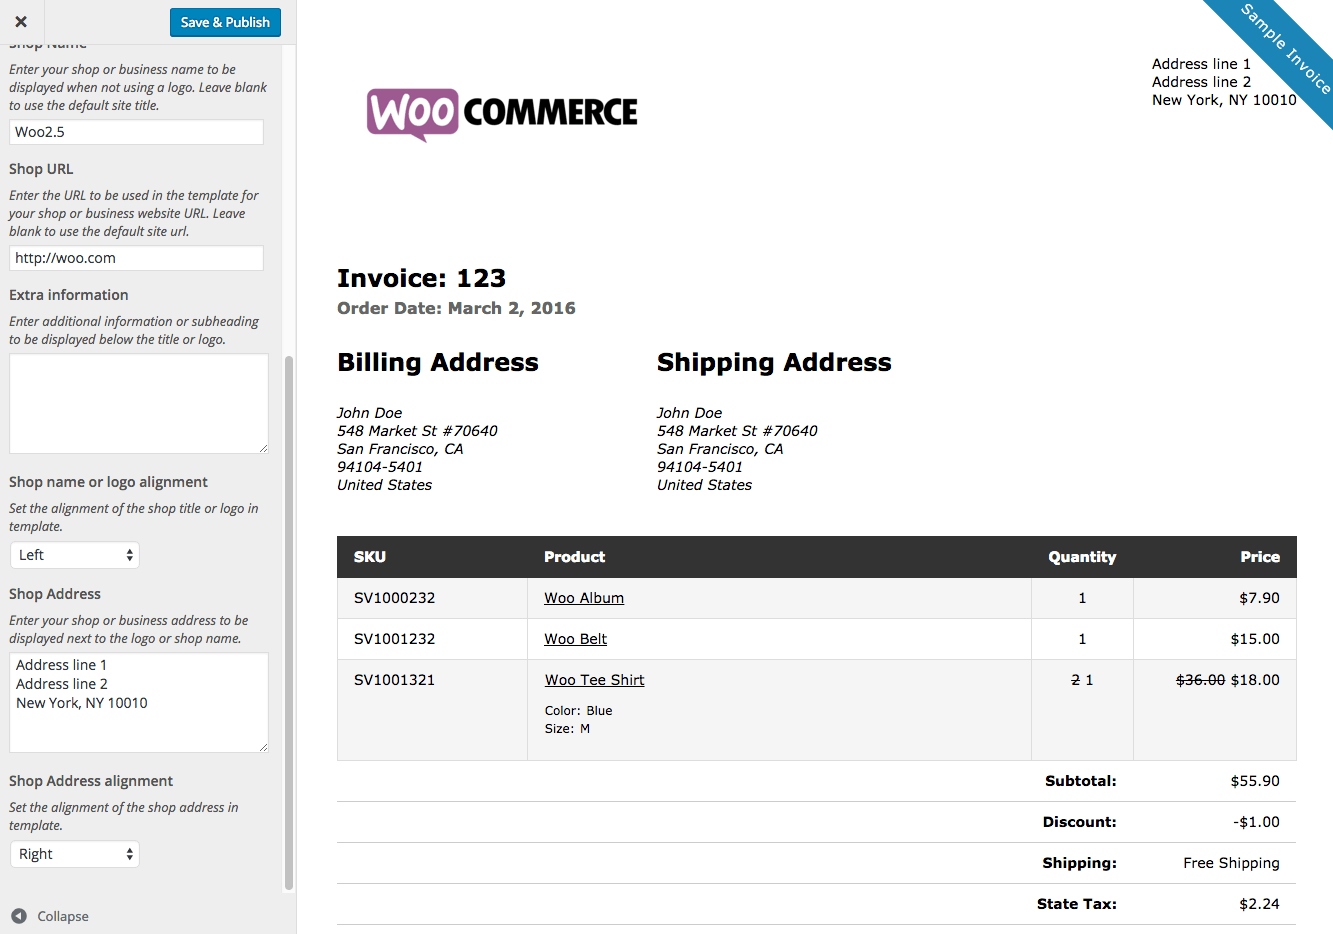 Sandiegolocksmithsus  Personable Woocommerce Print Invoices Amp Packing Lists  Woocommerce Docs With Exquisite Woocommerce Print Invoices  Packing Lists Customizer With Attractive Invoices On Line Also Towing Invoice Template In Addition Dealers Invoice And Scan Invoices Into Quickbooks As Well As Invoice Printer Machine Additionally Zoho Invoice App From Docswoocommercecom With Sandiegolocksmithsus  Exquisite Woocommerce Print Invoices Amp Packing Lists  Woocommerce Docs With Attractive Woocommerce Print Invoices  Packing Lists Customizer And Personable Invoices On Line Also Towing Invoice Template In Addition Dealers Invoice From Docswoocommercecom